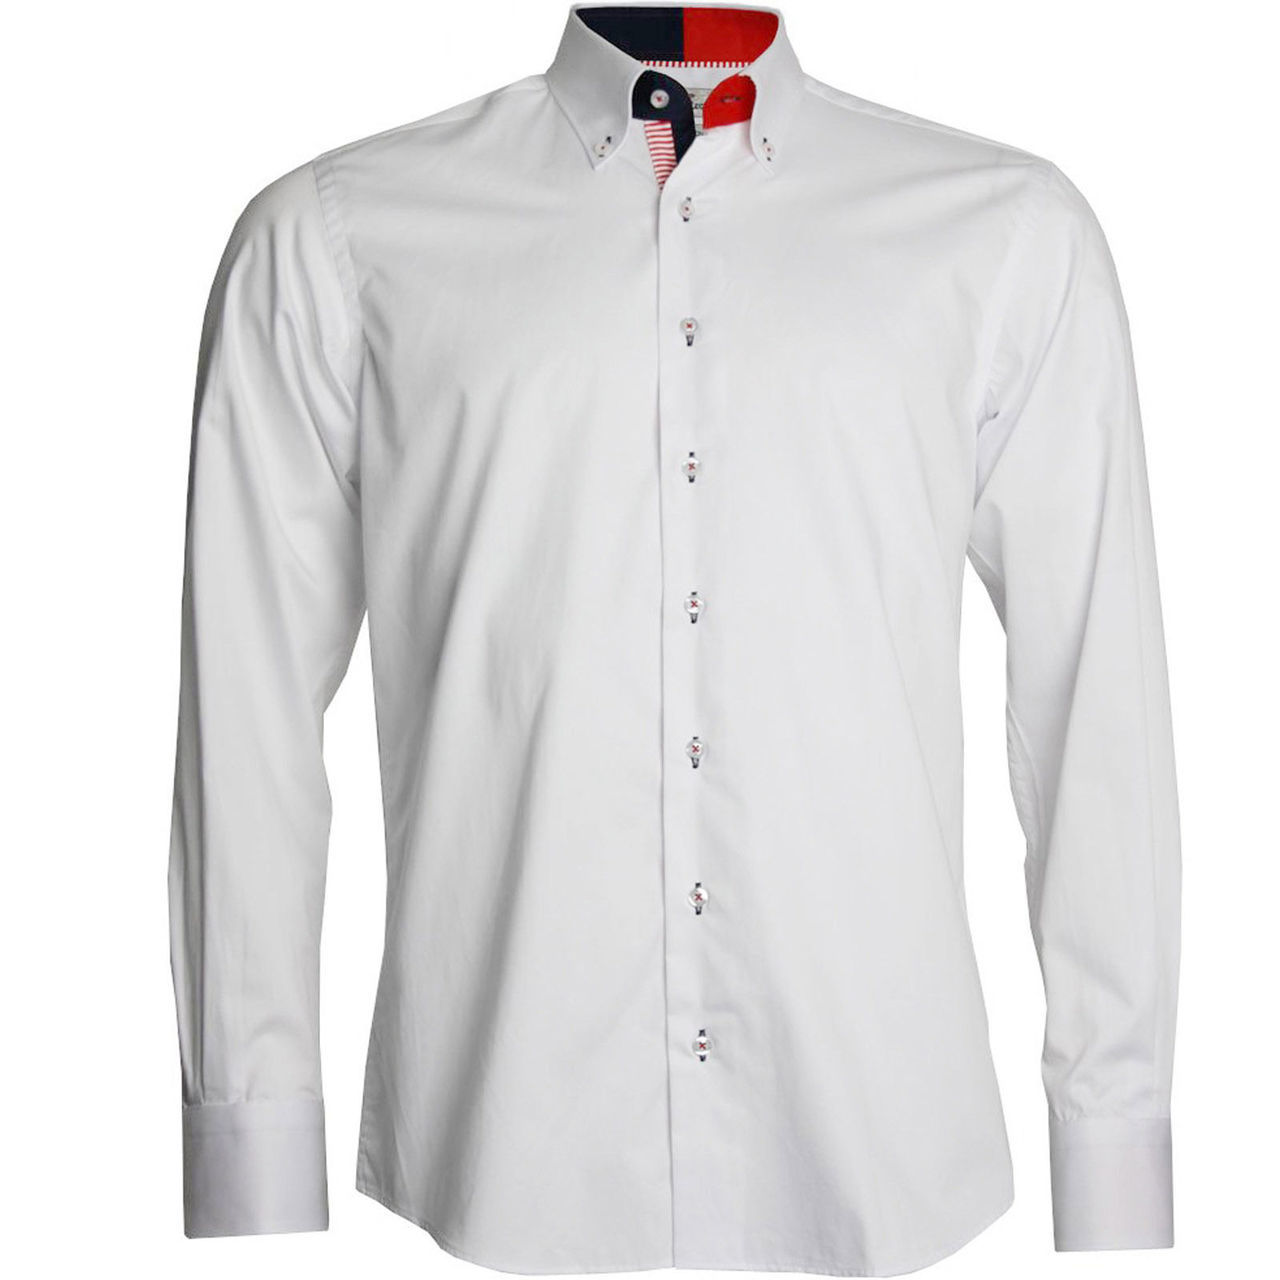 Mens White Collar Dress Shirts